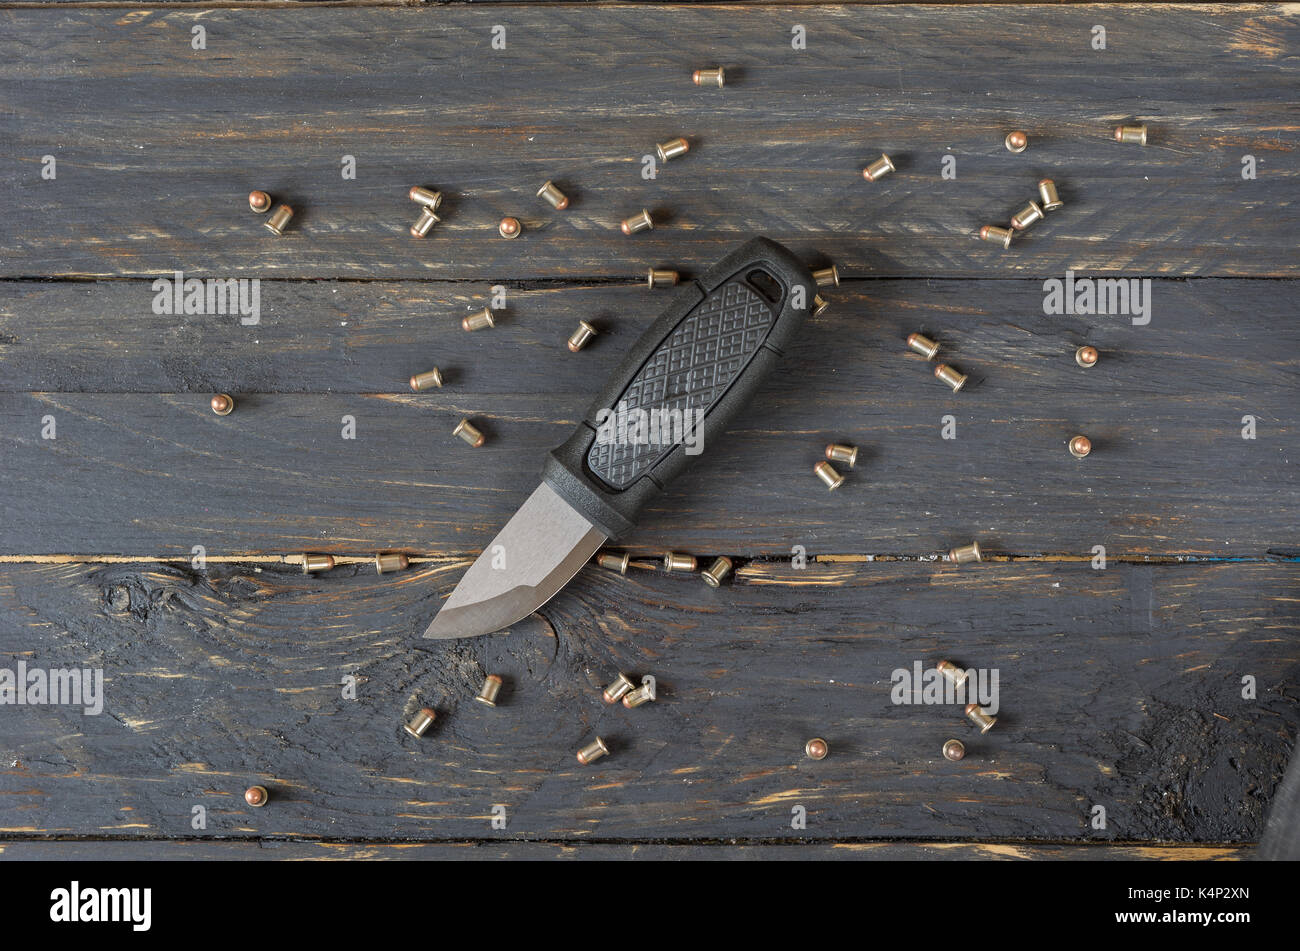 Knife and a lot of small cartridges. Stock Photo